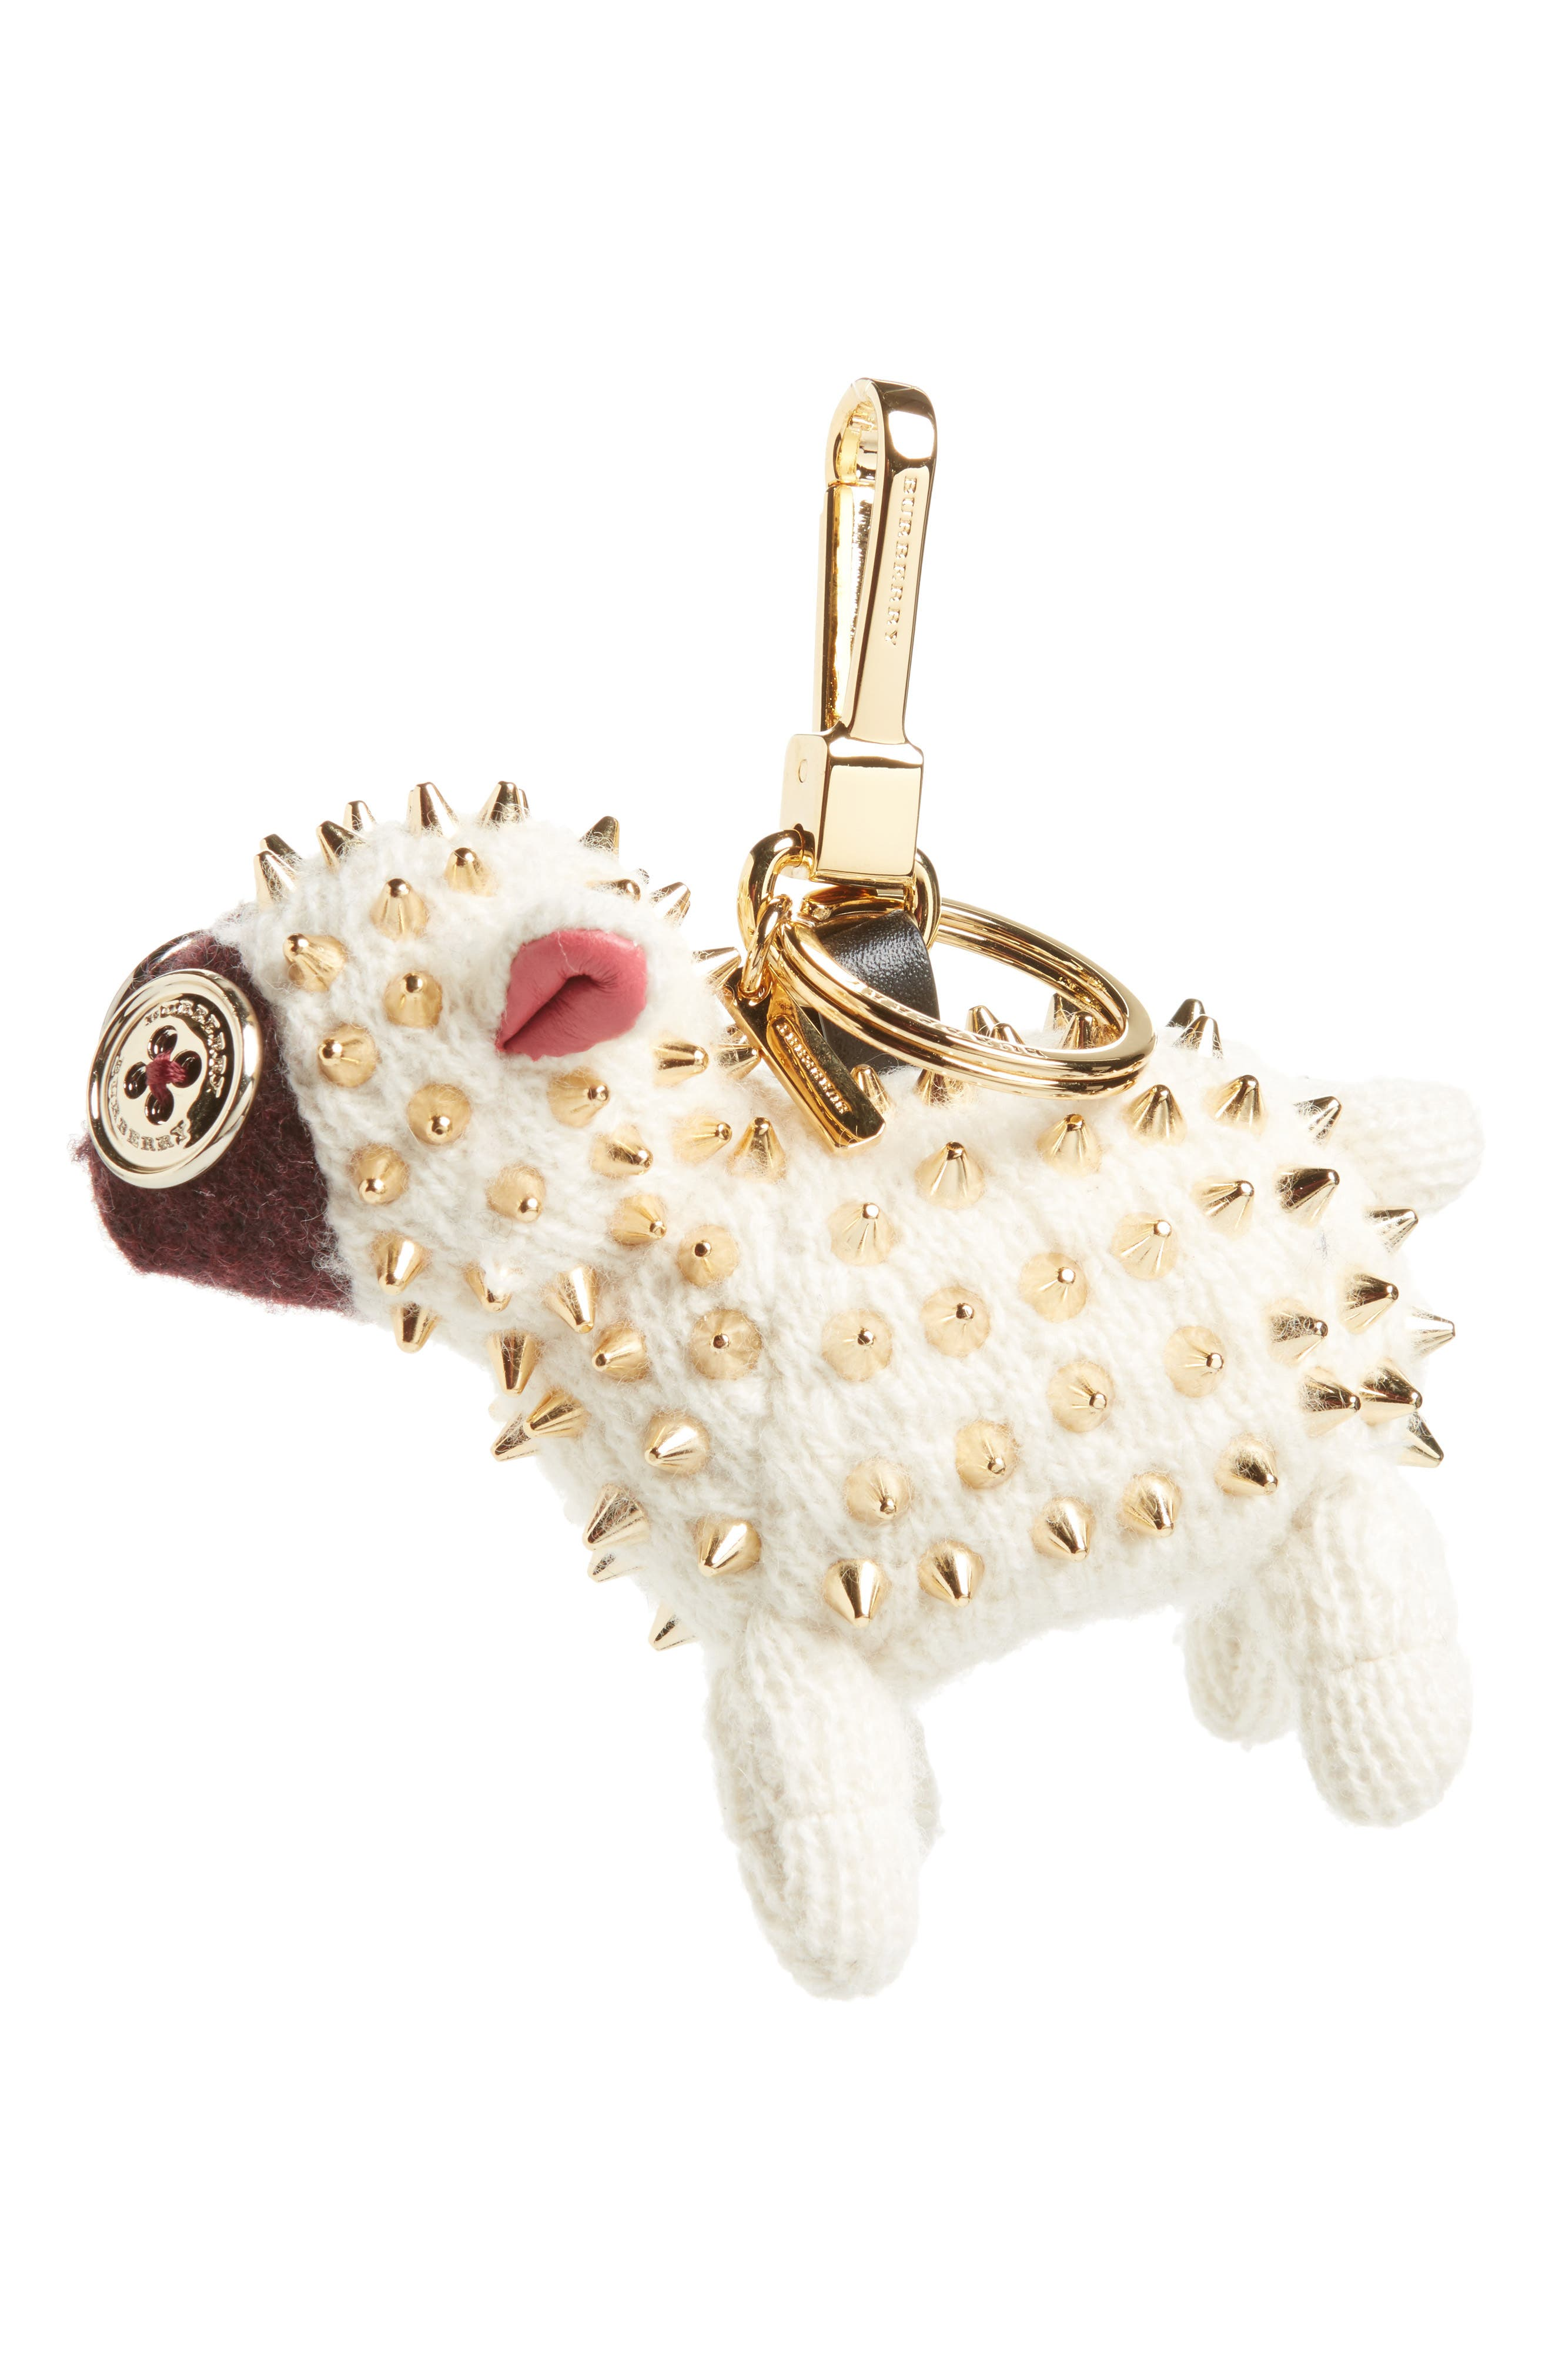 Wendy the Sheep Studded Cashmere Bag Charm,                         Main,                         color, 100